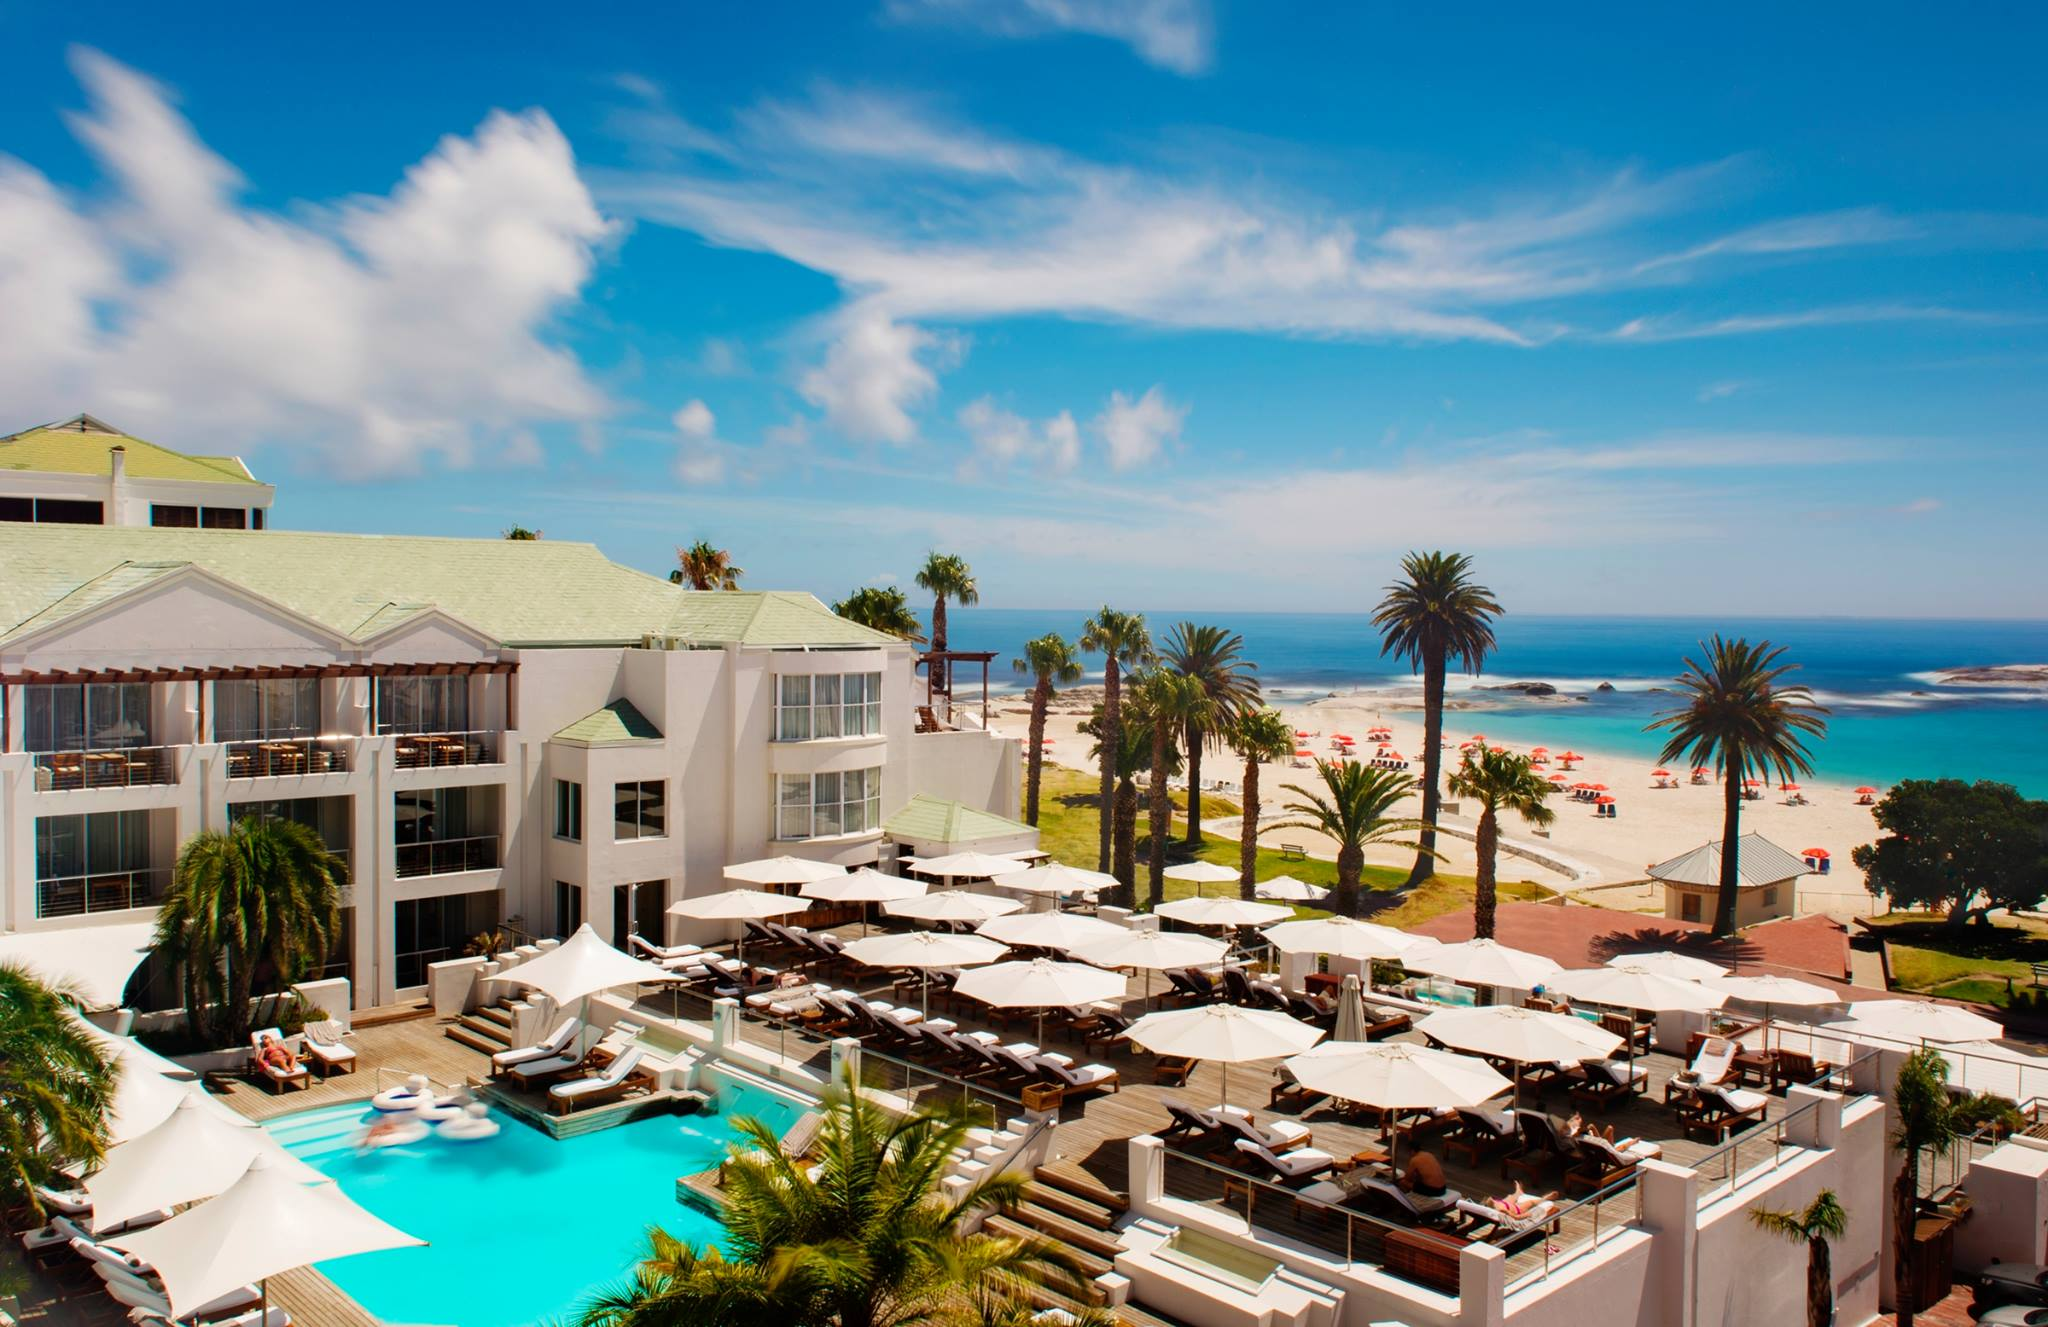 Marvellous The Bay Hotel  Cape Town  Golf In The Garden Route  South Africa With Marvelous The Bay Hotel  Cape Town With Astounding Garden Inn Hilton Also Amazon Garden Furniture In Addition Argos Garden Tools And London Covent Garden Travelodge As Well As Balcony Garden Ideas Additionally Potting Soil Vs Garden Soil From Golfinthegardenroutecom With   Marvelous The Bay Hotel  Cape Town  Golf In The Garden Route  South Africa With Astounding The Bay Hotel  Cape Town And Marvellous Garden Inn Hilton Also Amazon Garden Furniture In Addition Argos Garden Tools From Golfinthegardenroutecom